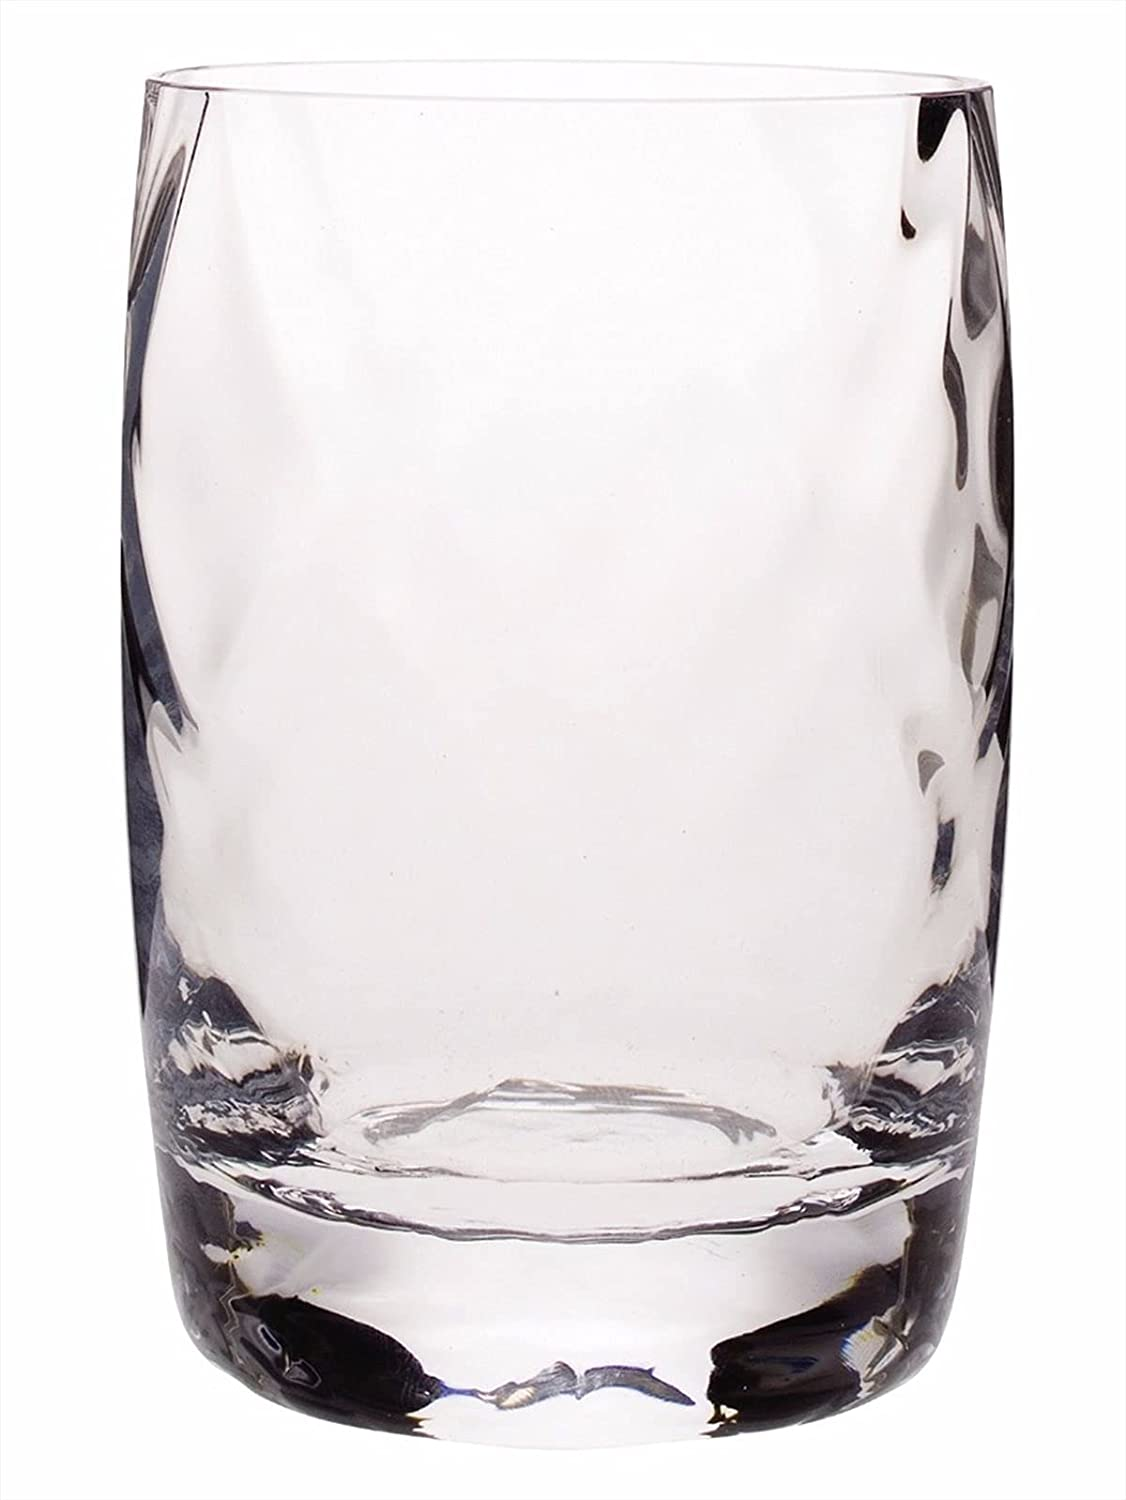 LaModaHome NEW before selling Pasabahce Diamond Whisky Dealing full price reduction Glass Premium Quality Bar Gl